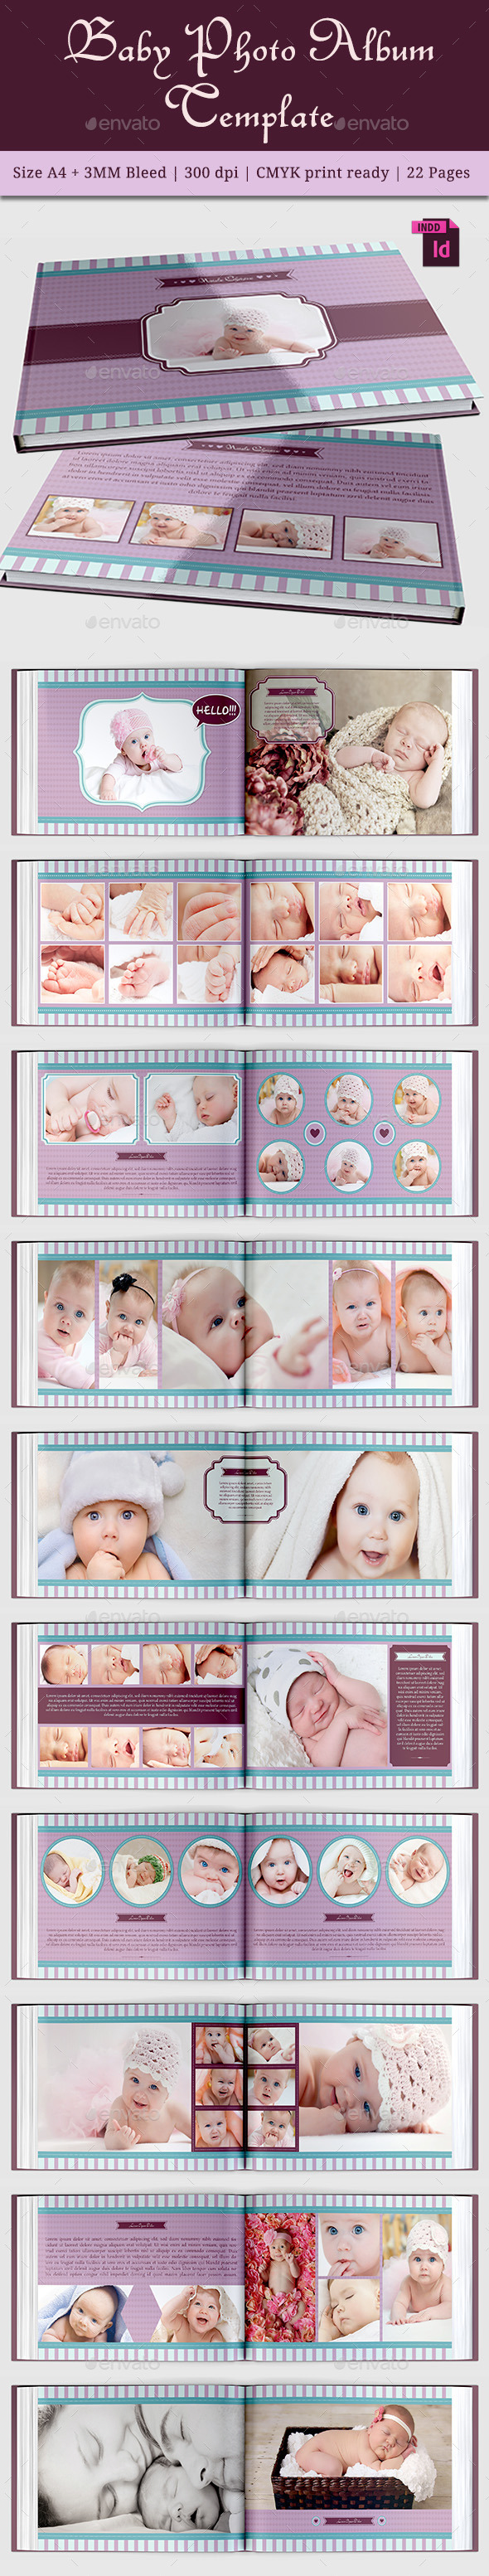 GraphicRiver Baby Photo Album Vol 2 11645997